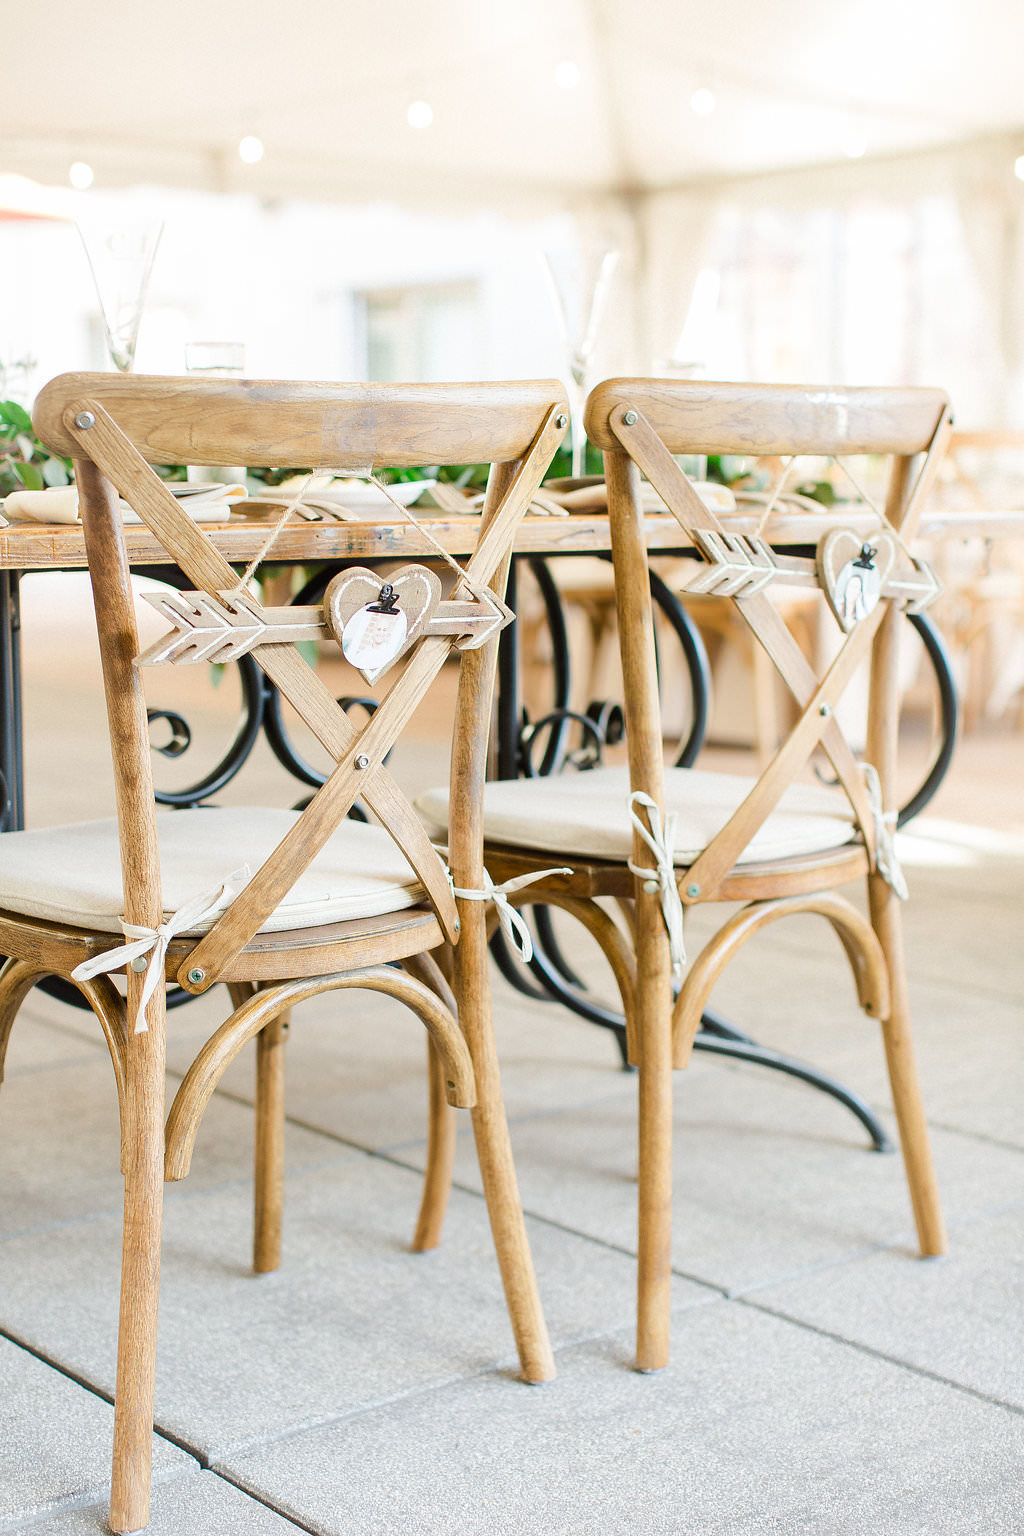 Classic, Organic Earthy Wedding Reception Decor, Unique Black and Wood Sweetheart Table, Wooden Chiavari Chairs with Wooden Arrow and Heart Laser Cut Signs Hanging Off Chairs